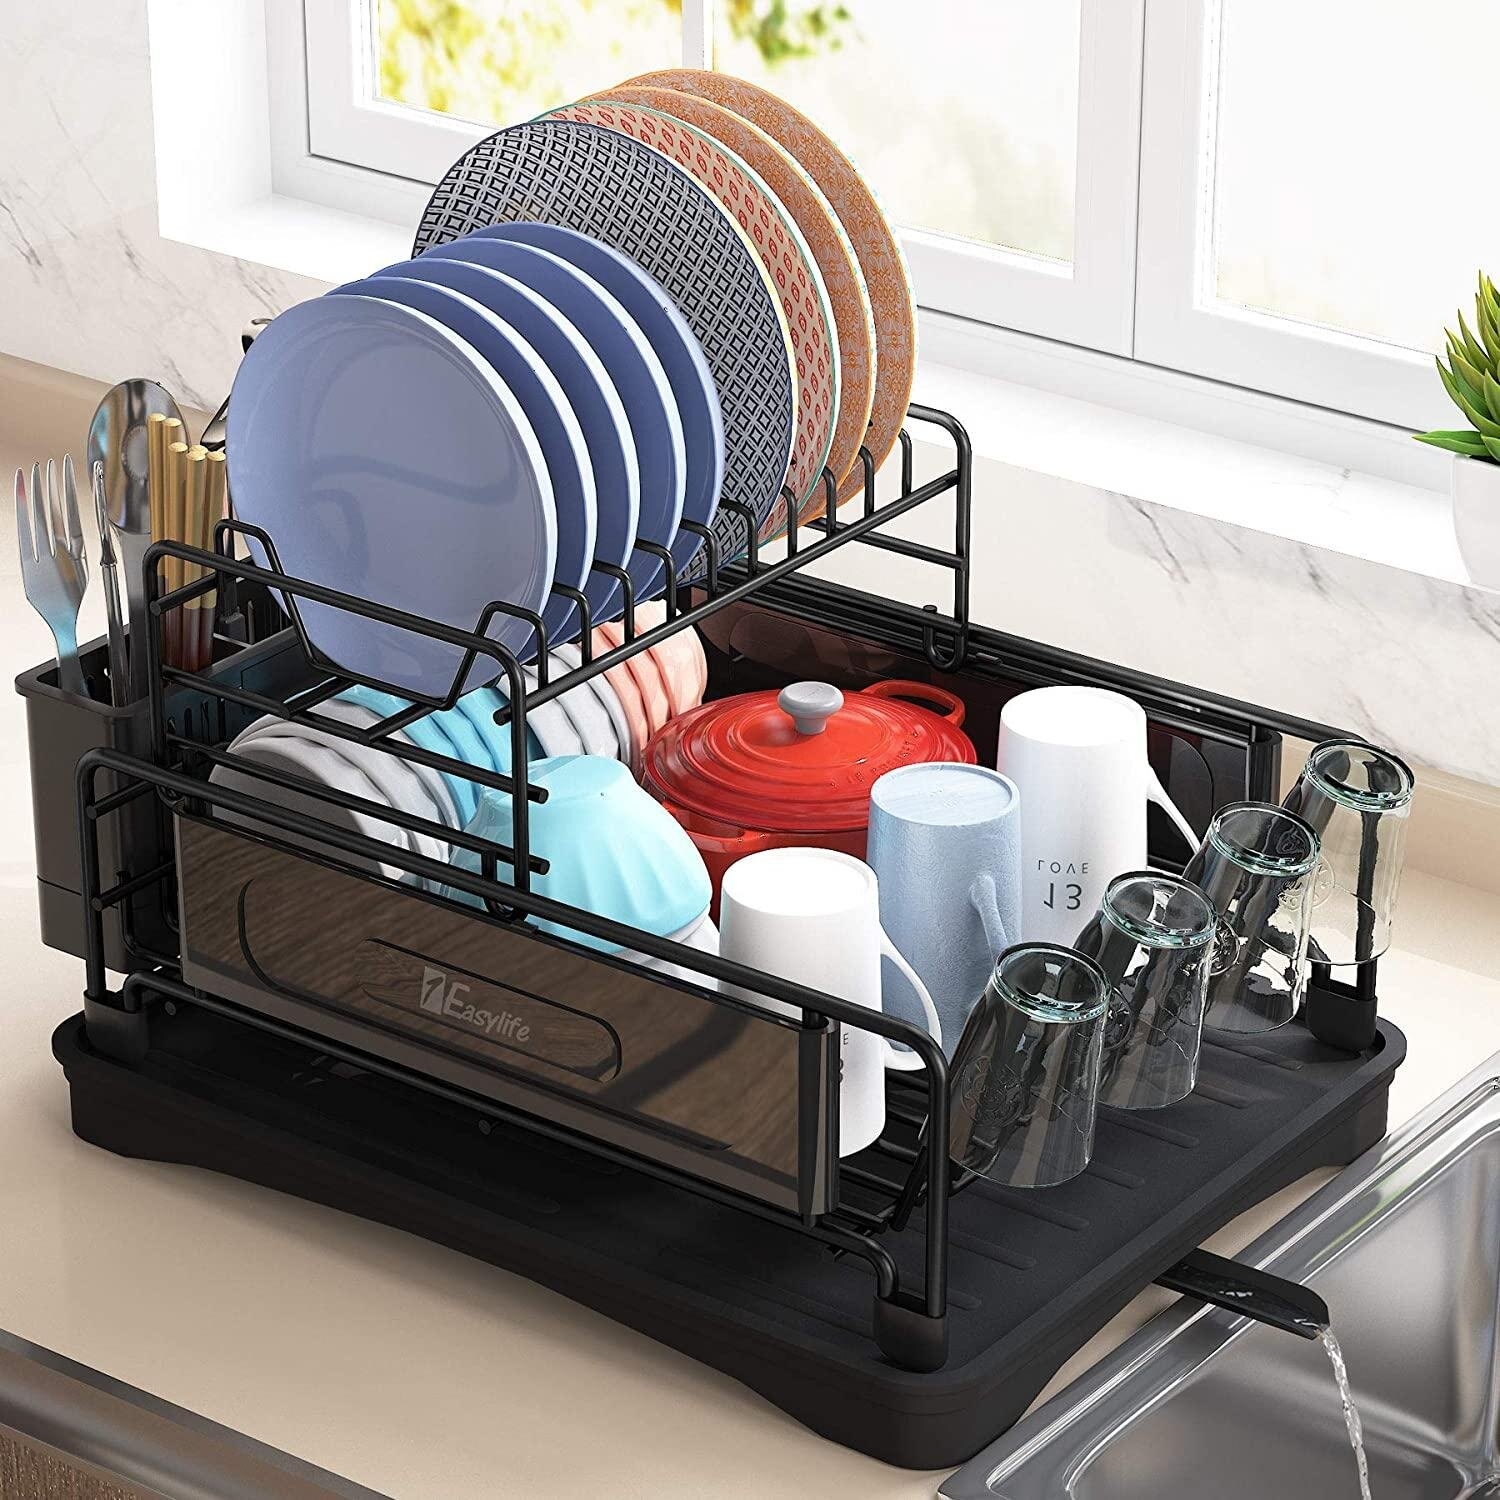 Treasurecabinet Dish Drying Rack 2 Tier Compact Kitchen Dish Rack Drainboard Set Large Rust Proof Steel Dish Drainer With Swivel Spout Utensil Holder Non Slip Cup Holder For Kitchen Counter Wayfair